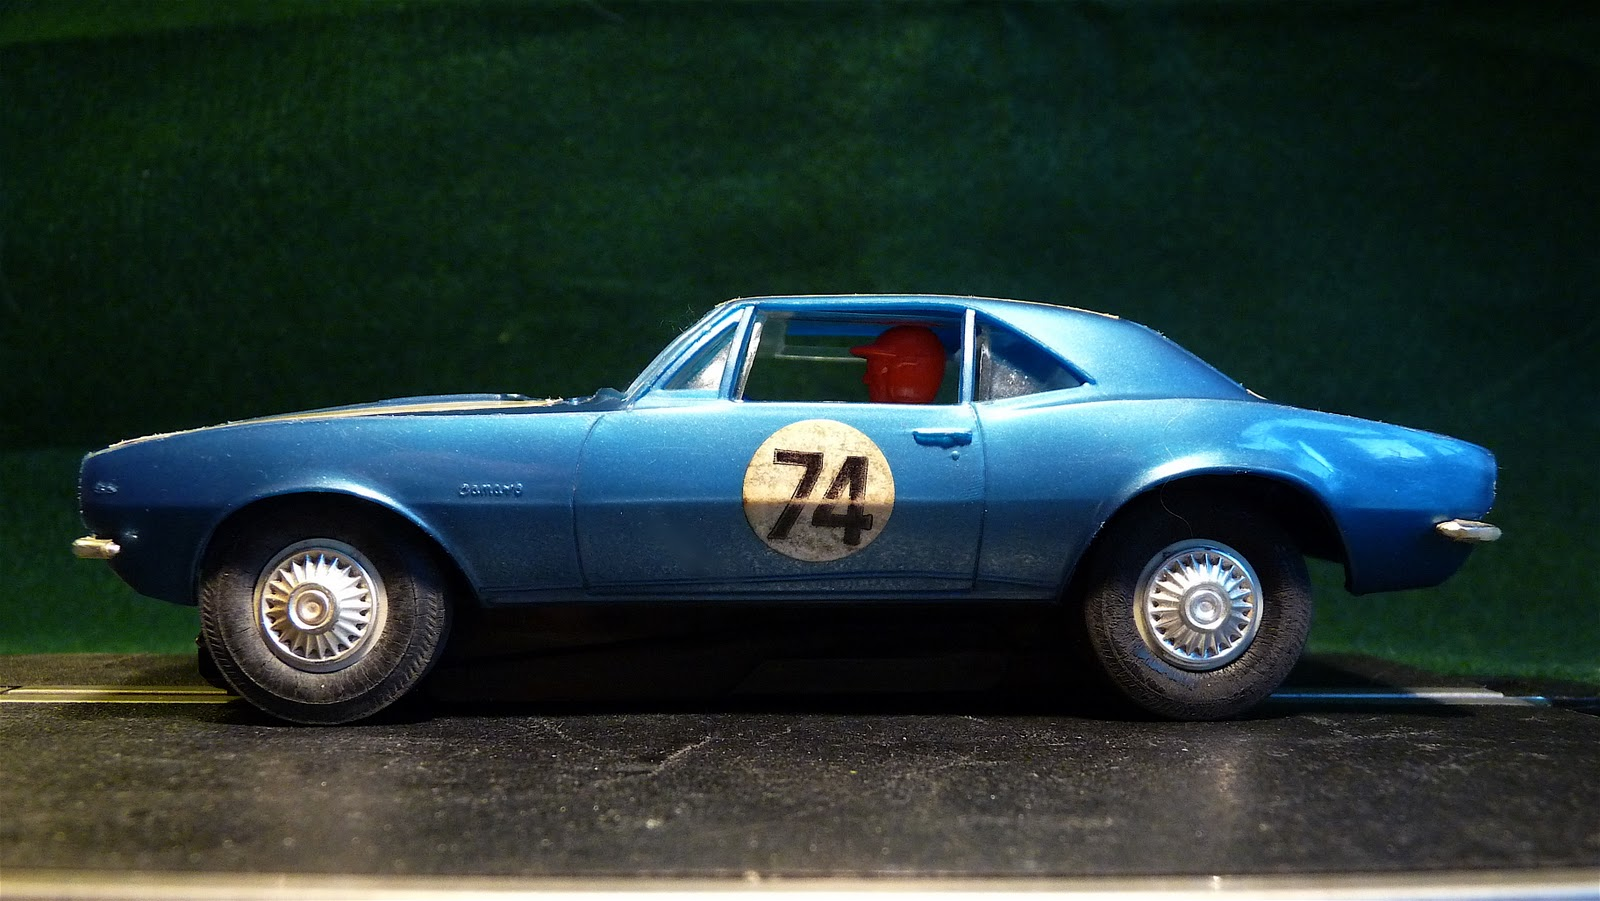 Welcome To Enzo\'s Garage Fun Factory: Vintage Revell 1967 Camaro #74 ...